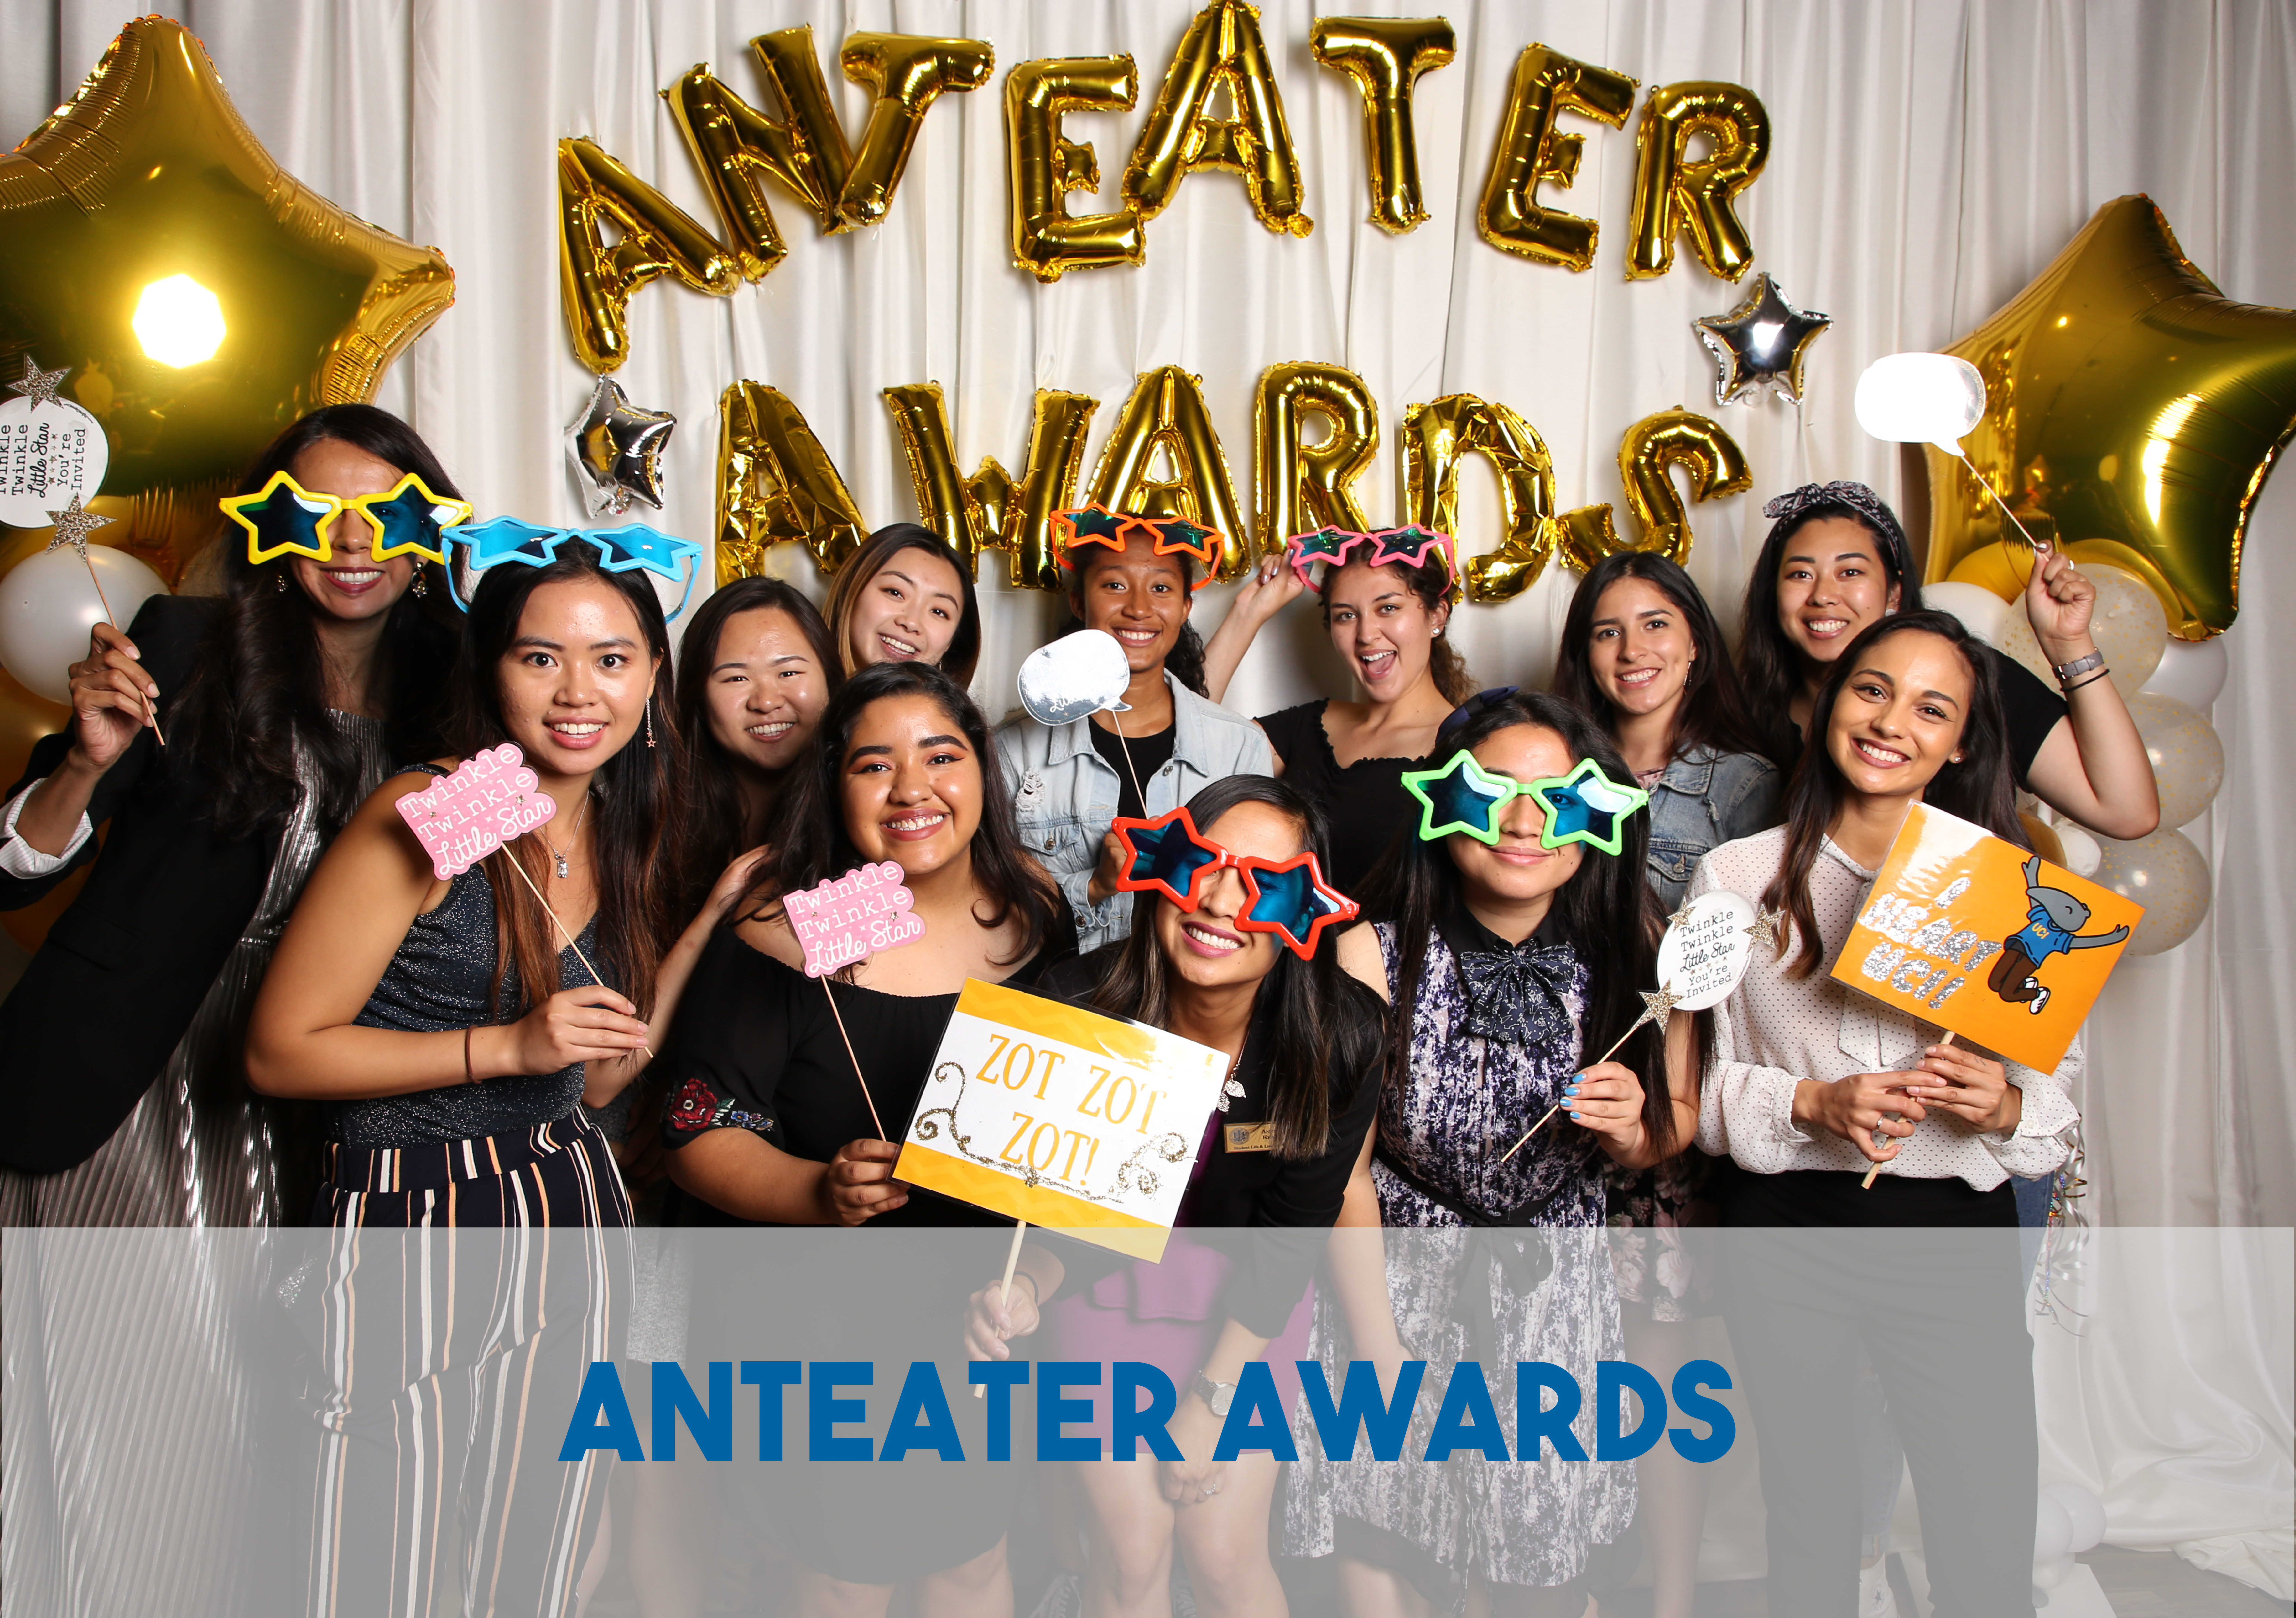 Photobooth of people at Anteater Awards